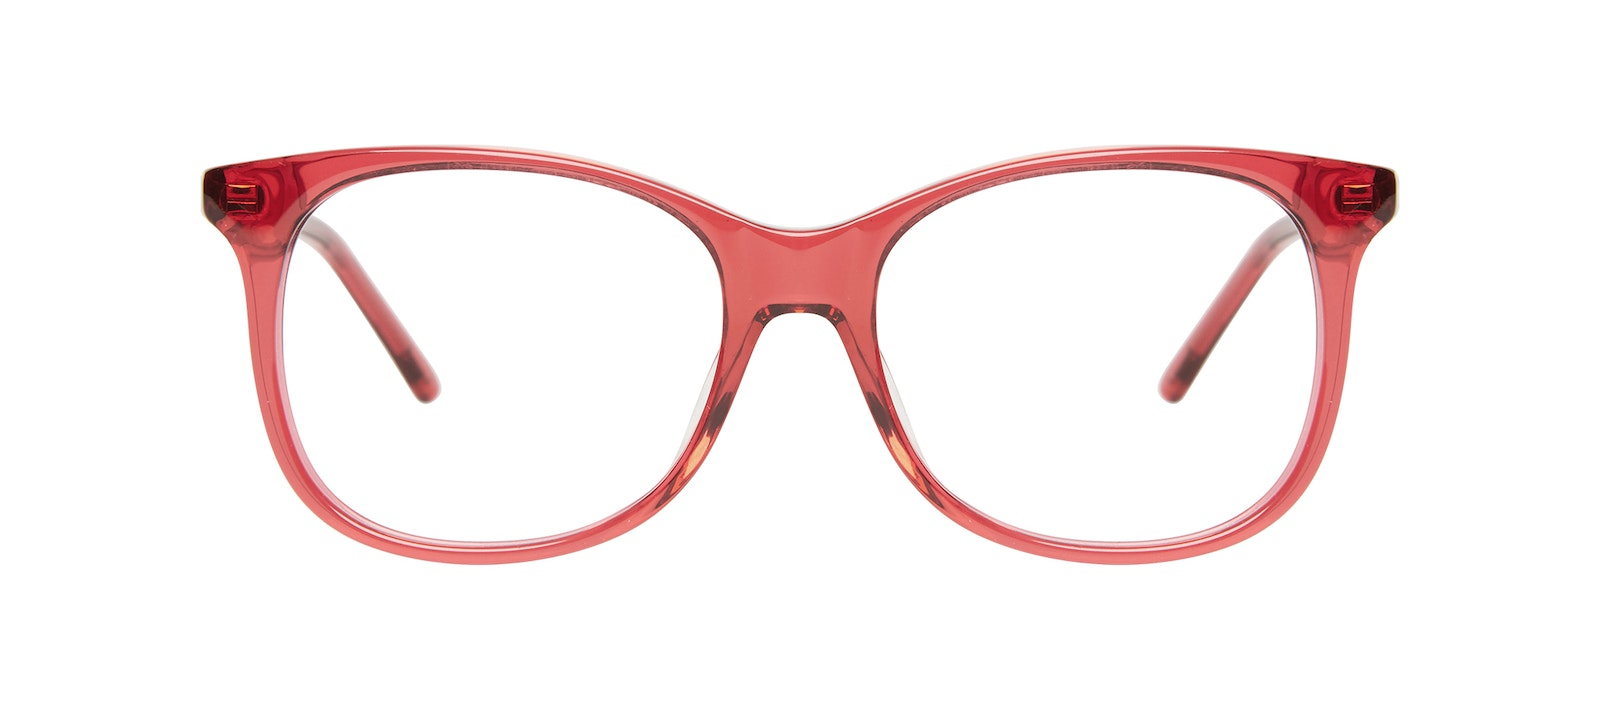 Affordable Fashion Glasses Square Eyeglasses Kids Bloom Junior Ruby Front